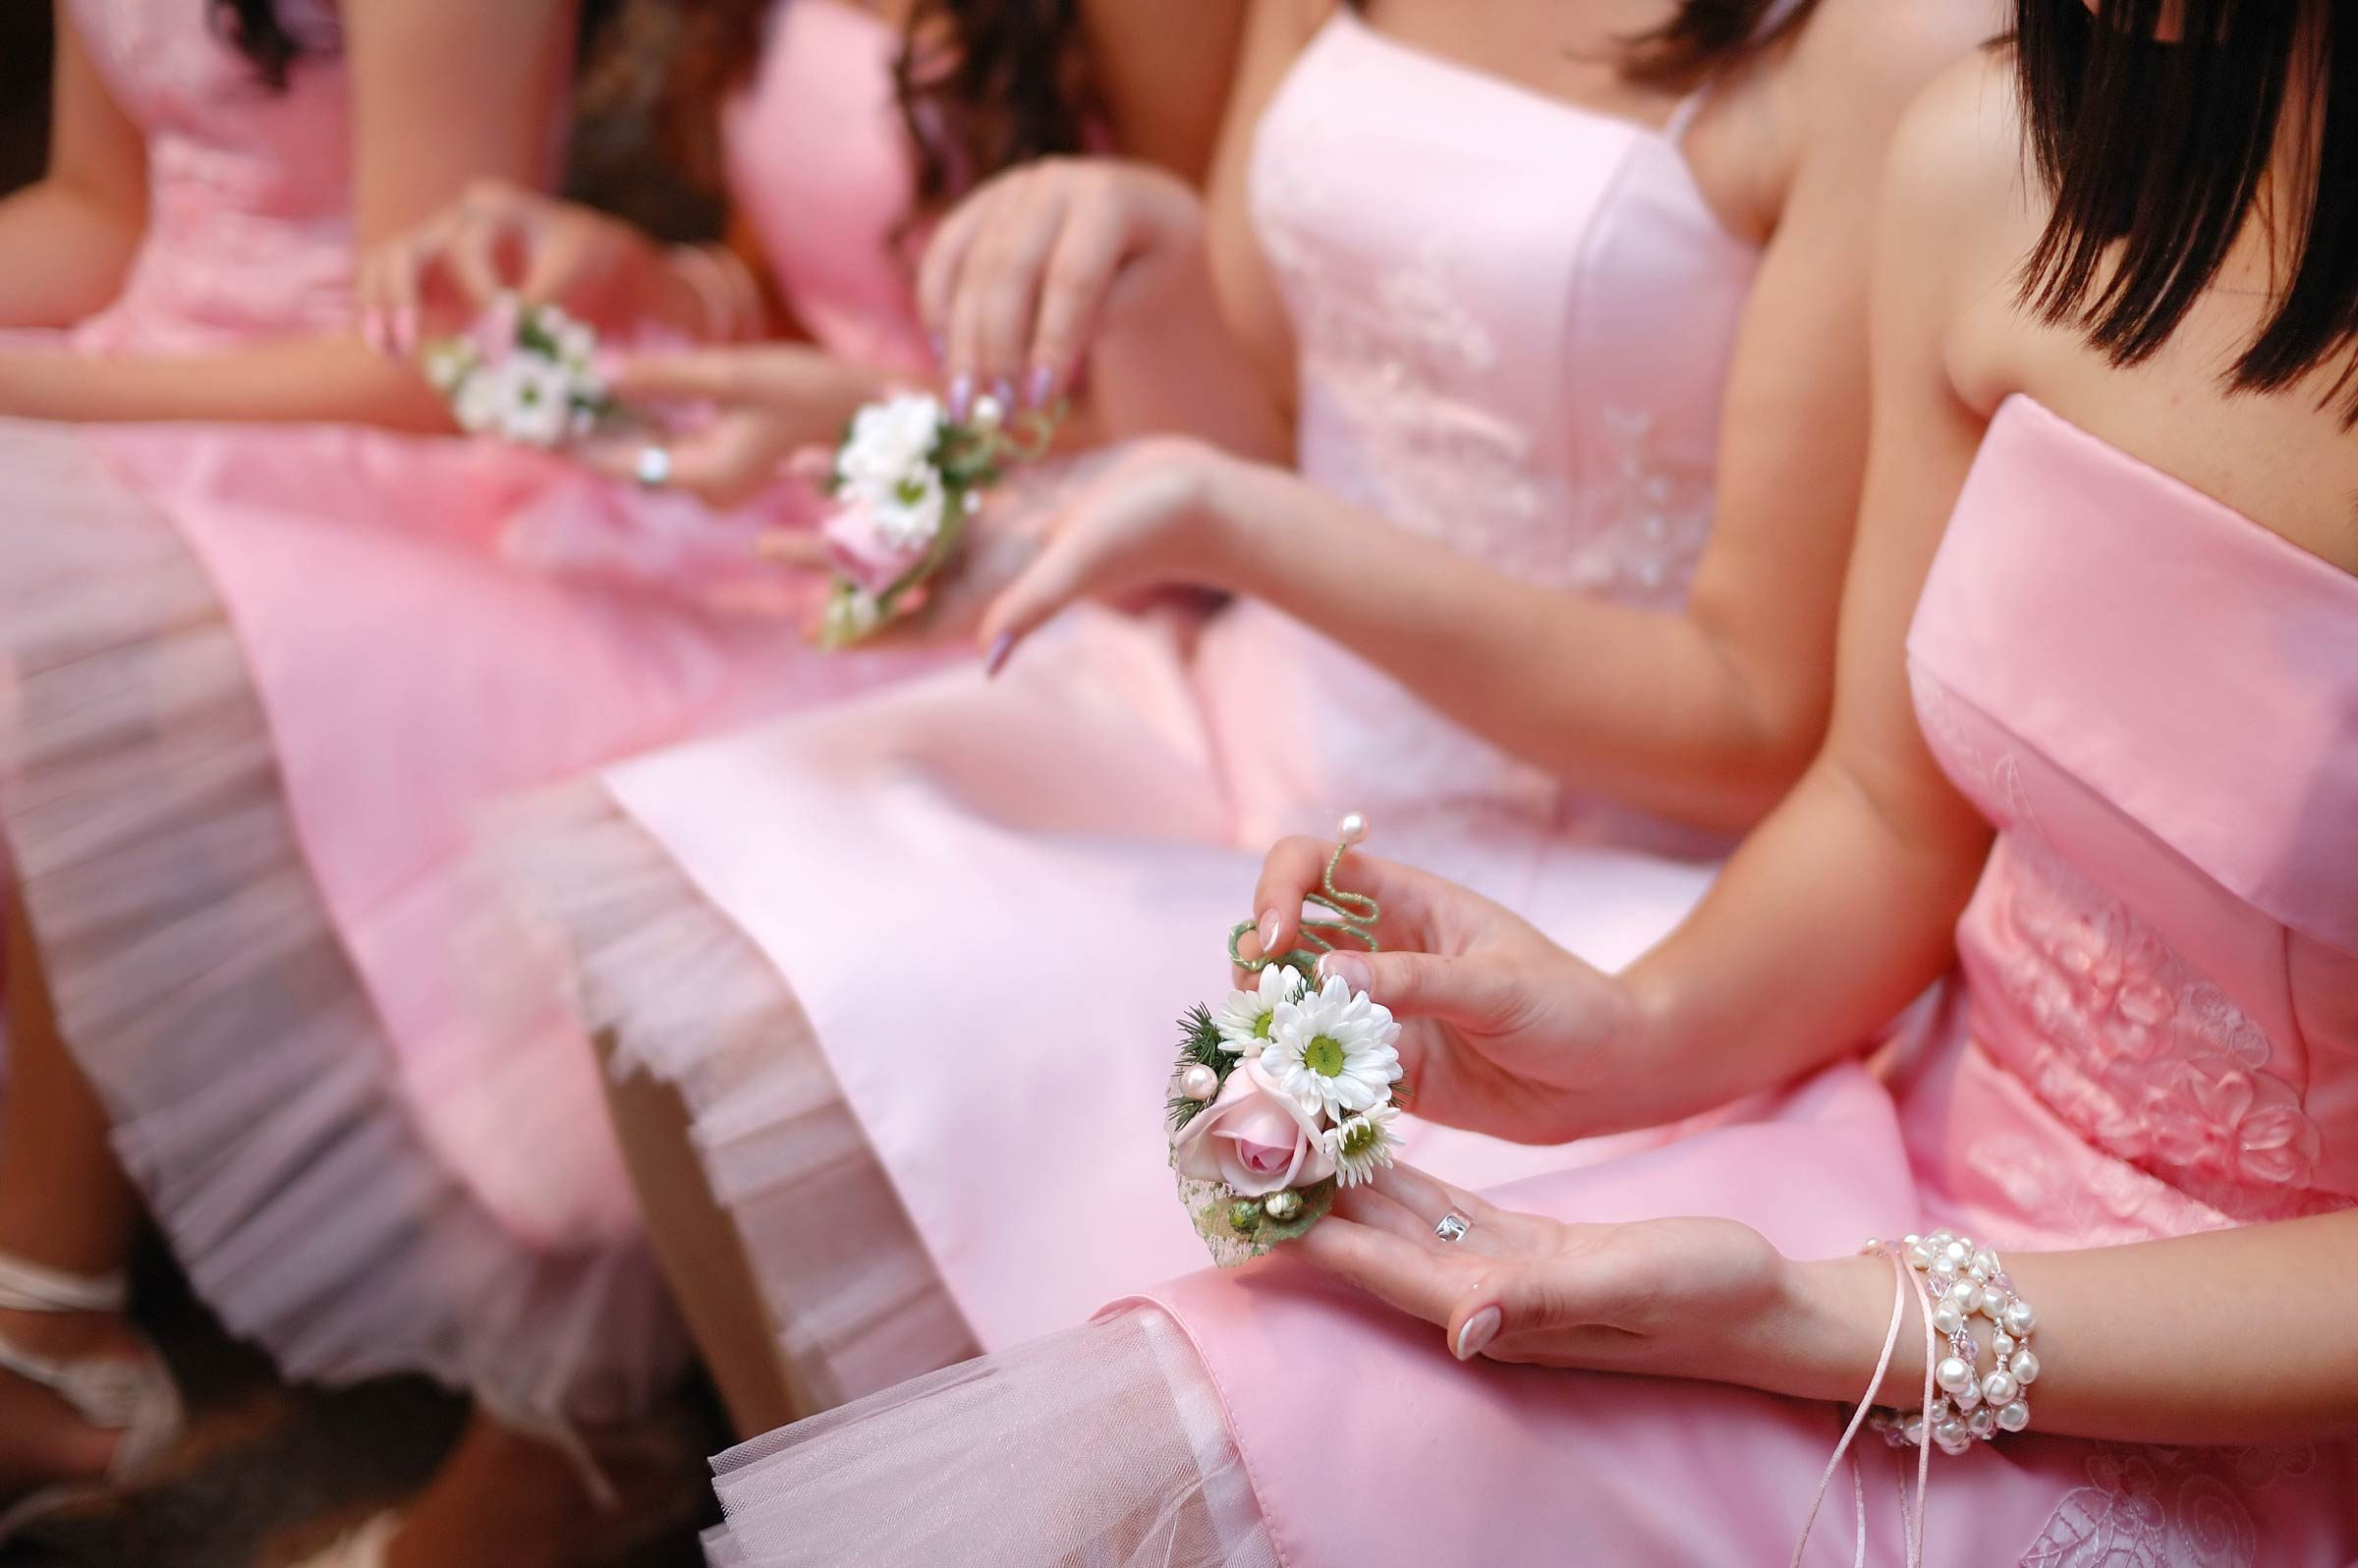 Wedding Gifts From Groom To Bride Etiquette: Bridesmaid Etiquette: How To Be A Good Bridesmaid